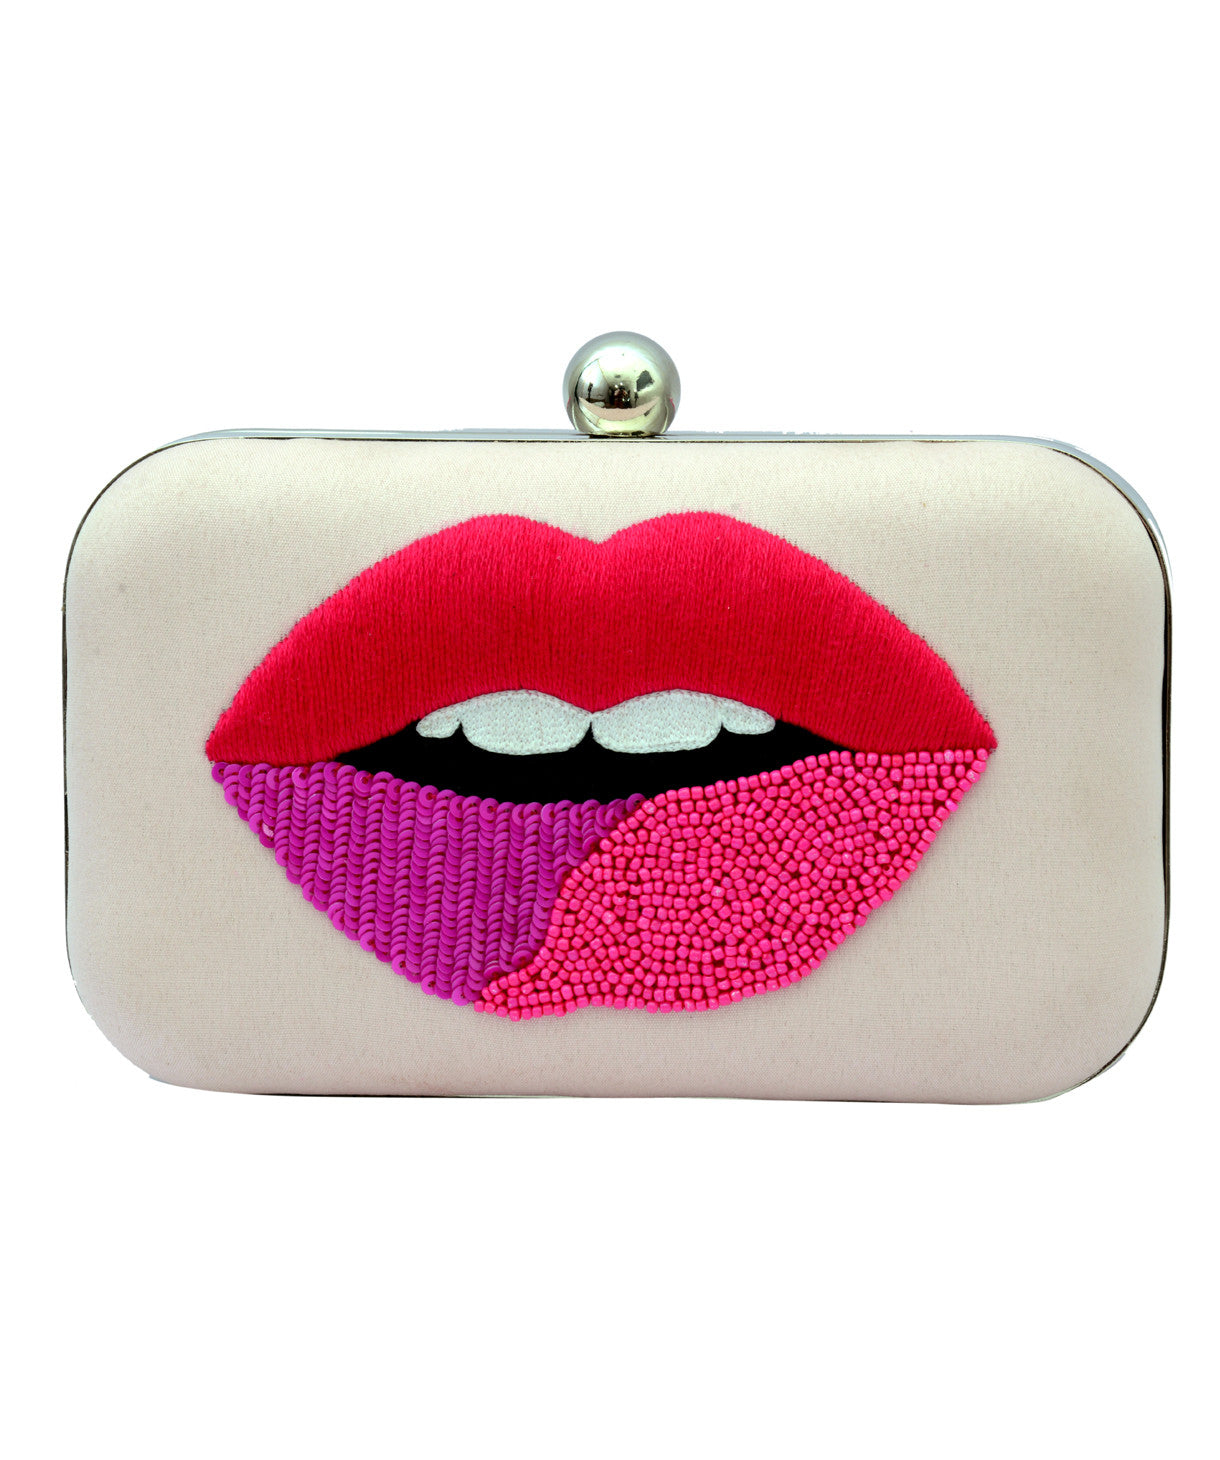 Uptownie X Parneet Bagga-Luscious Lips Box Clutch - Uptownie